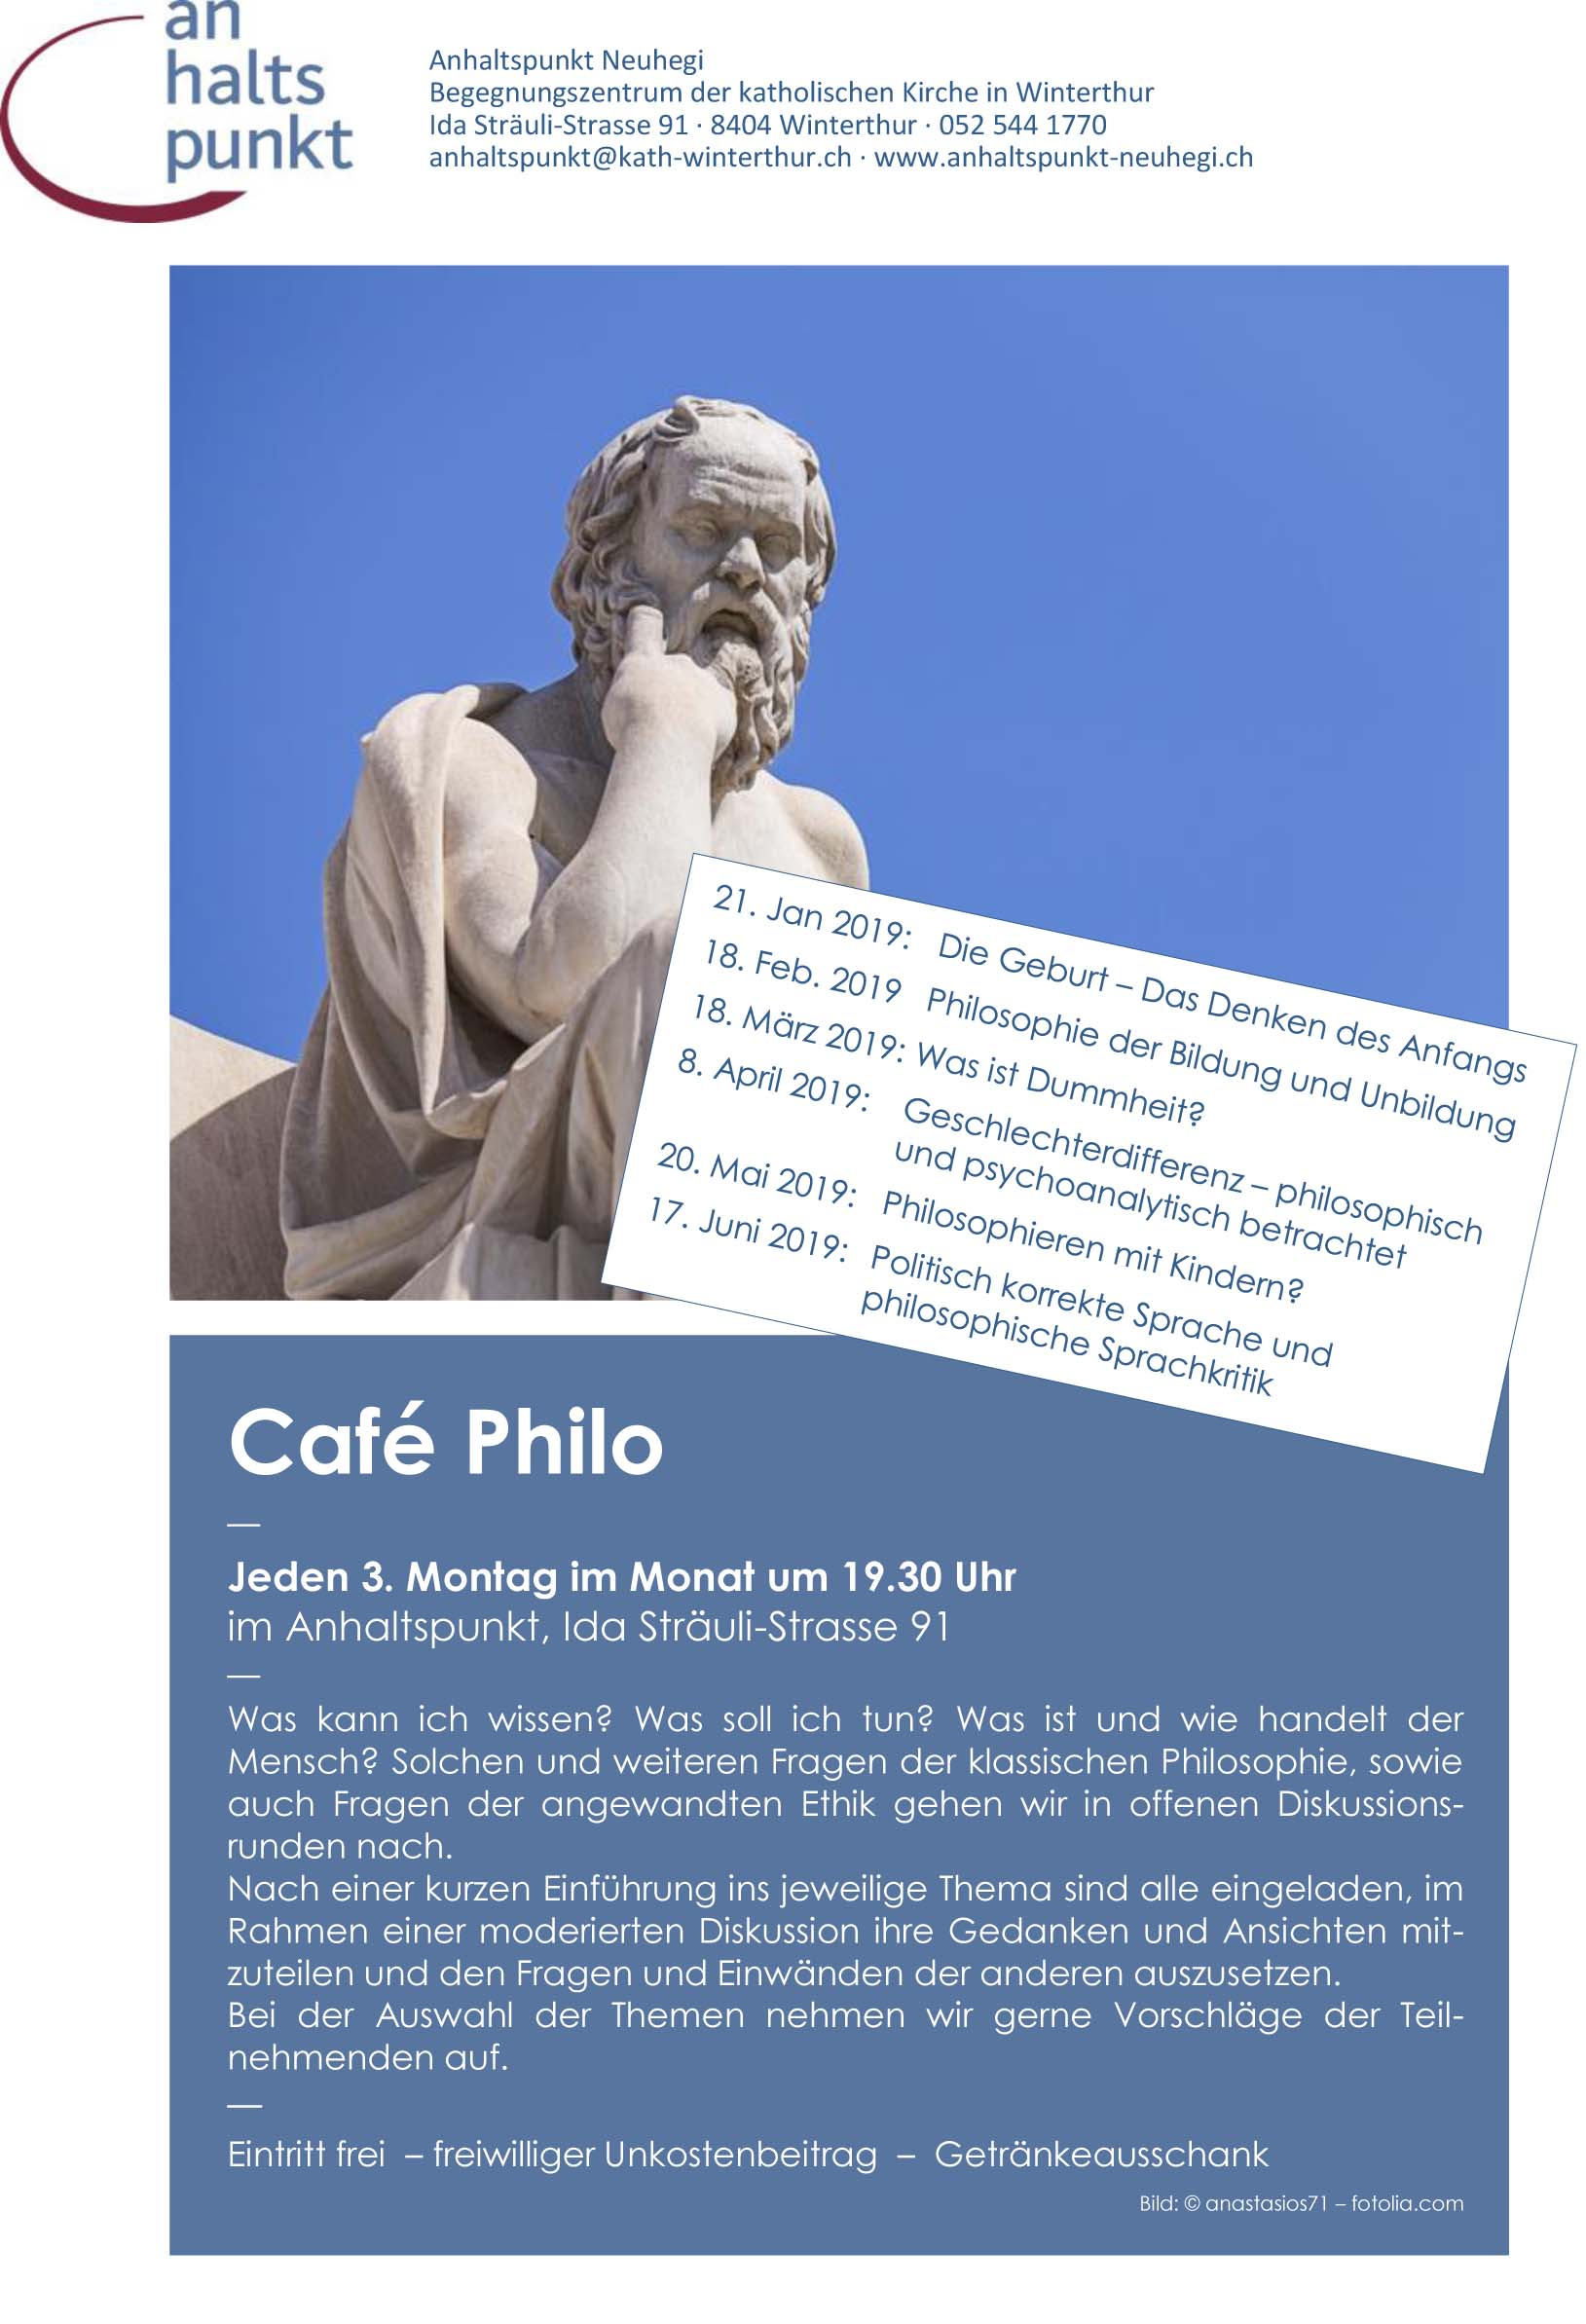 ahp Cafe Philo 2019 1